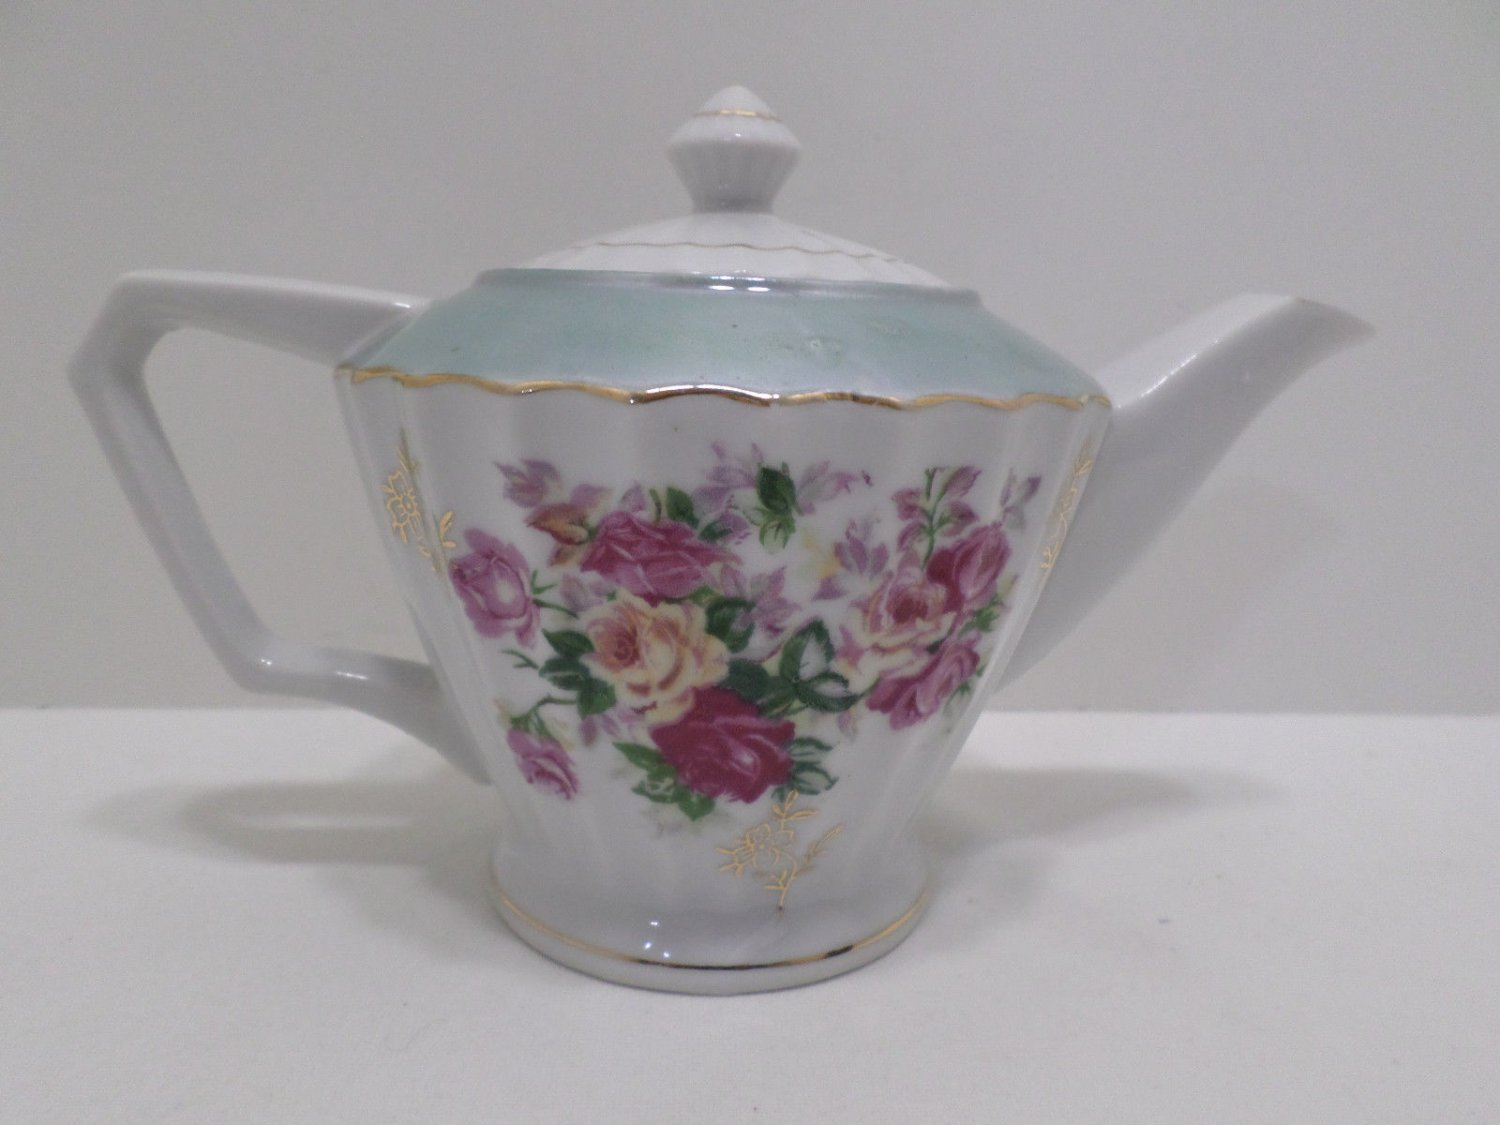 Norleans Tea Pot Porcelain White with Red Floral Pattern Made in Japan